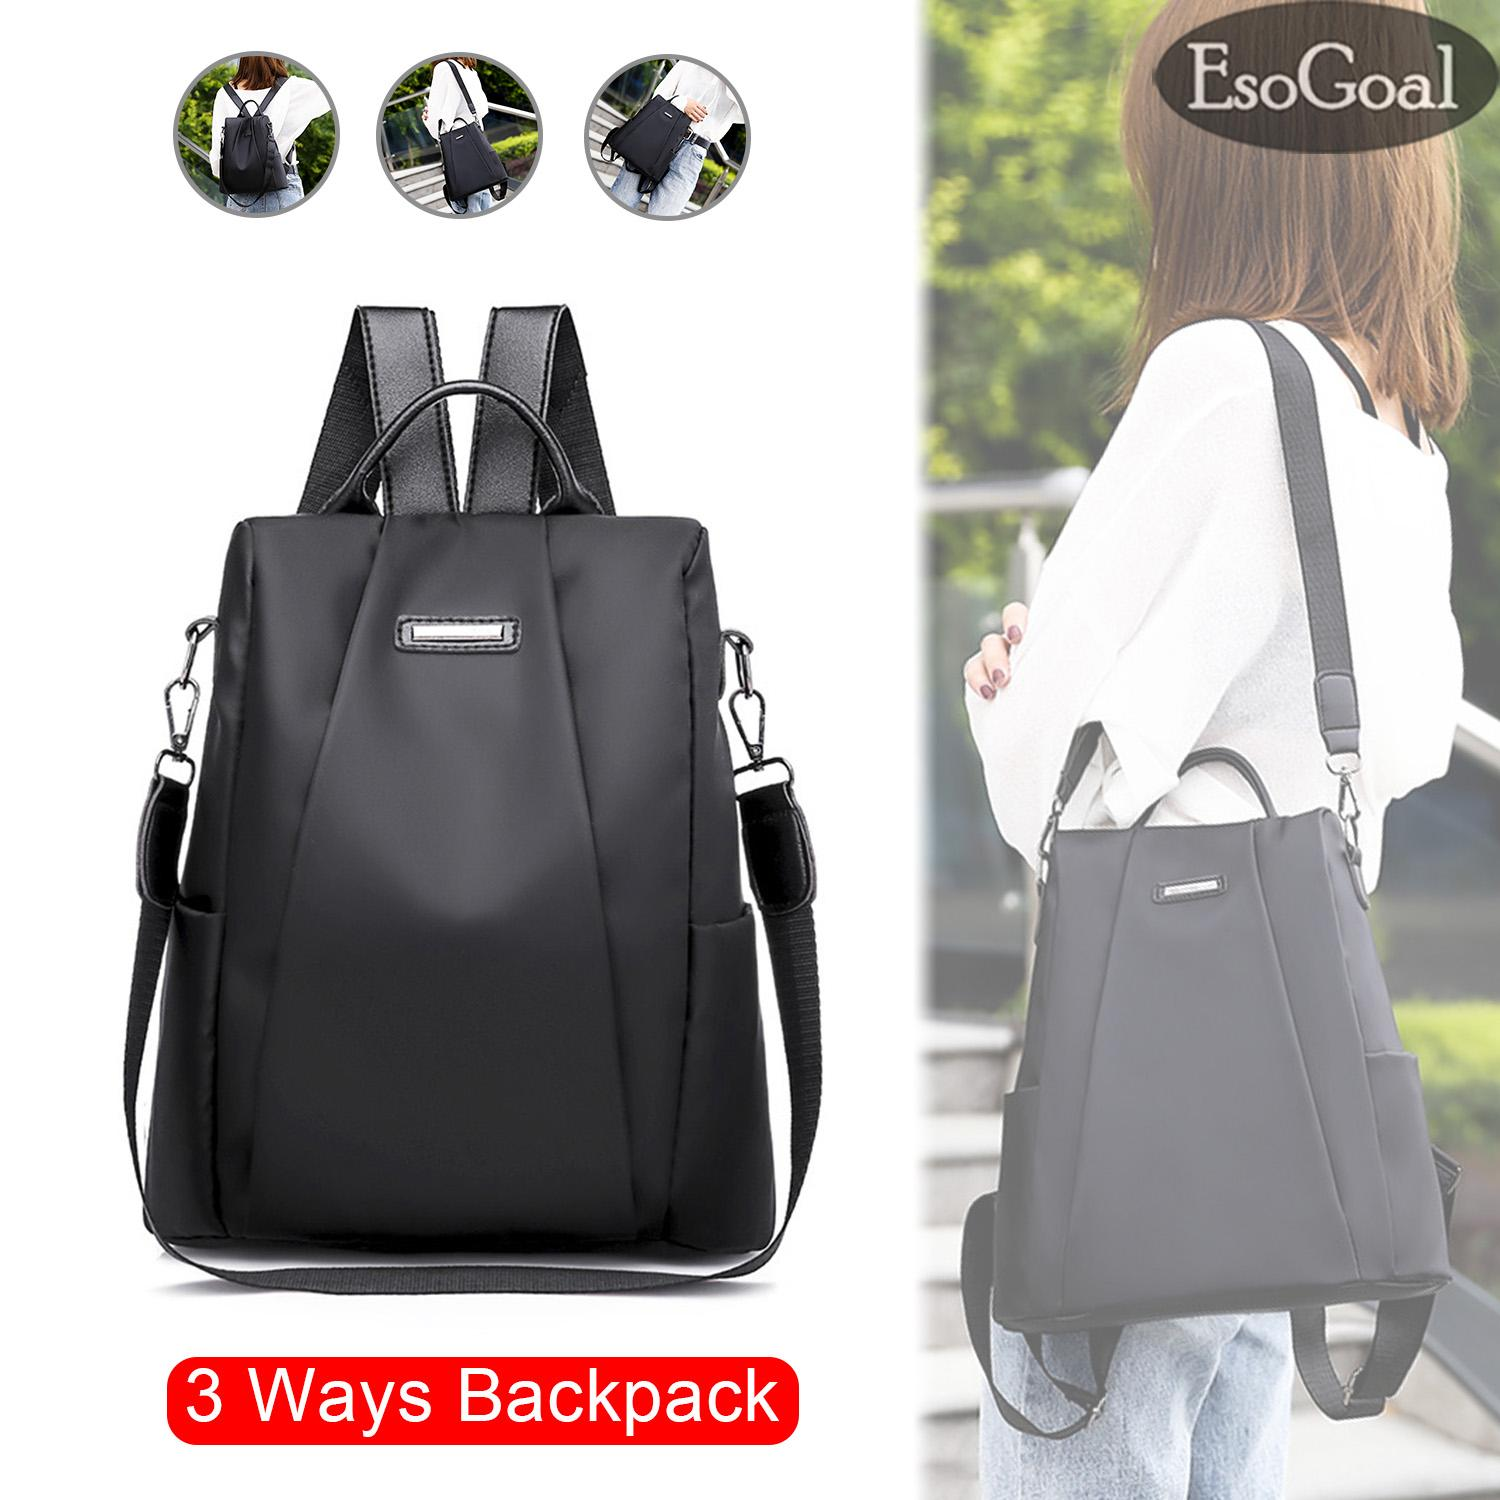 940a5fb58b EsoGoal Fashion Women Backpack Shoulder Bag Korea Style Anti-theft Backpack  College School Bag For